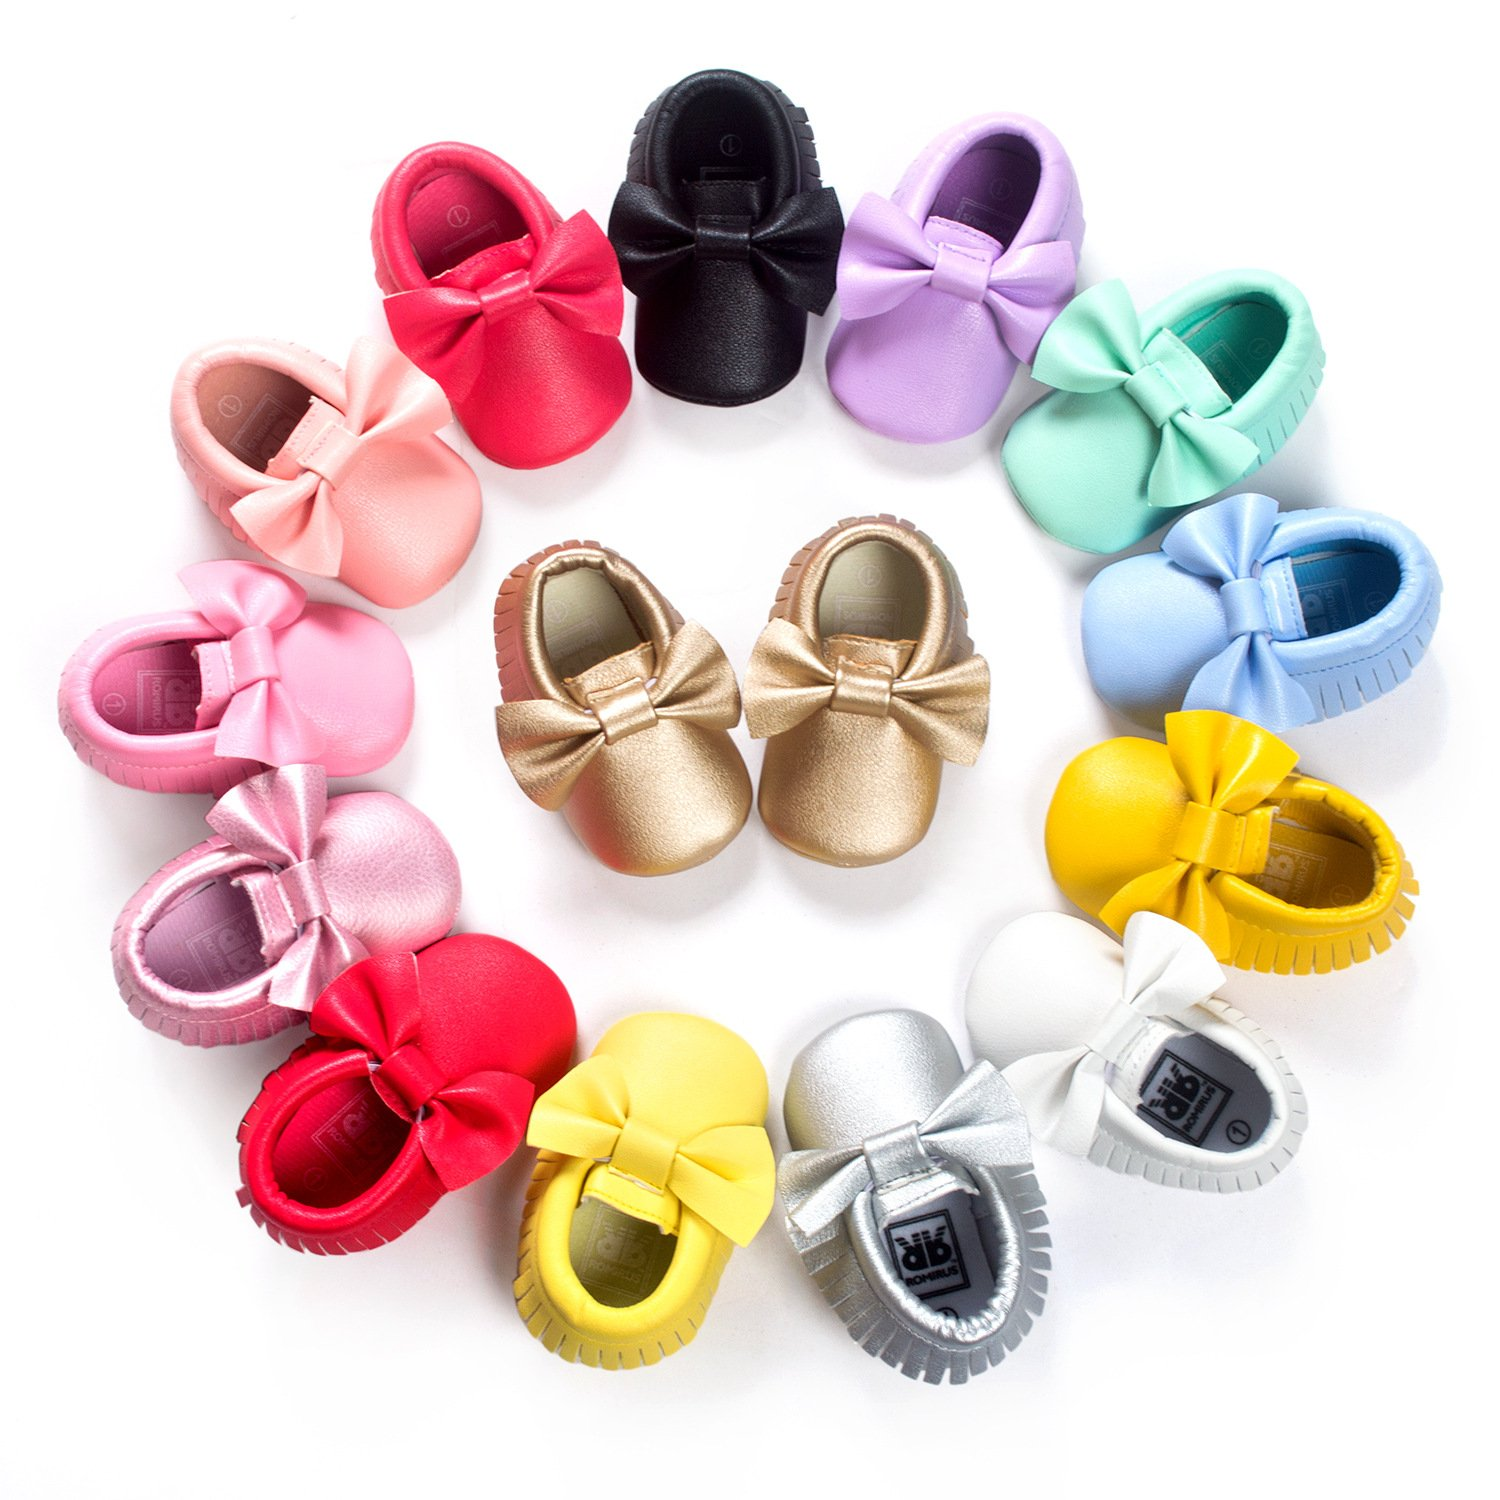 C&H Baby Boys Girls Soft Soled Tassel Bowknots Crib Infant Toddler Prewalker Moccasins Shoes 5107